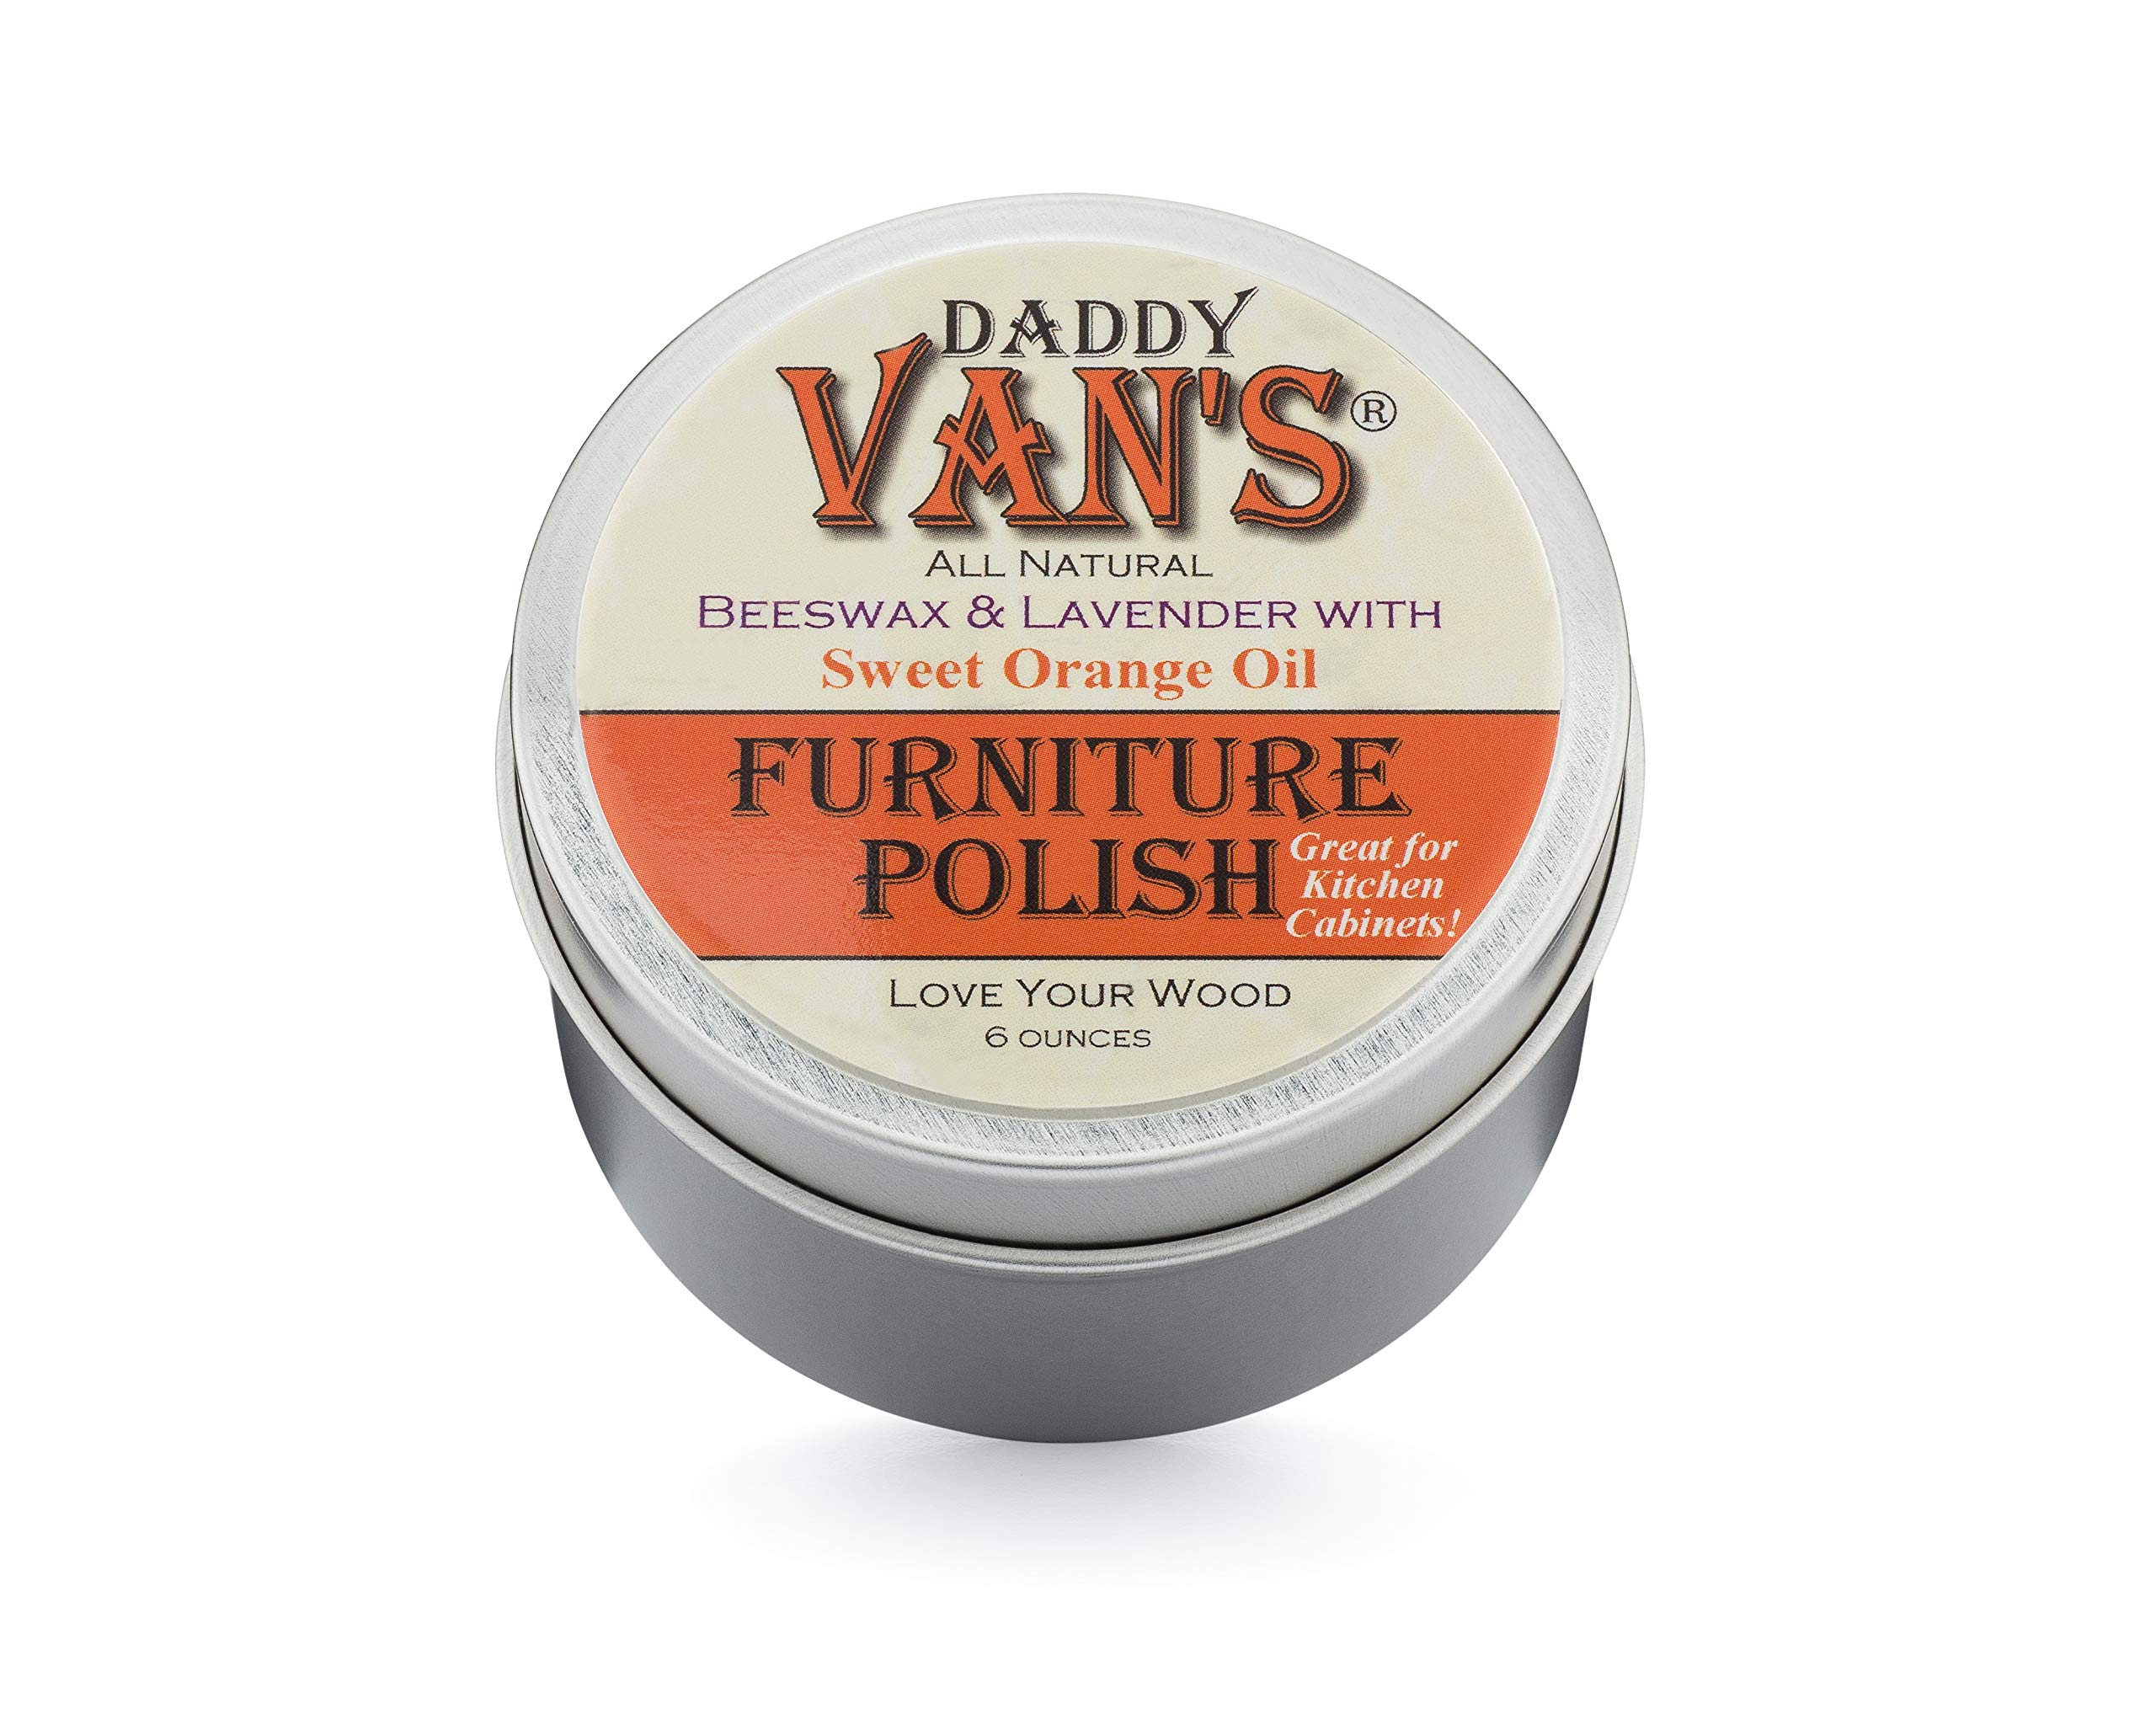 Daddy Van's All Natural Lavender & Sweet Orange Oil Beeswax Furniture Polish Chemical-Free Wood Wax Conditioner and Protectant. No Petroleum Distillates - One Tin by Daddy Van's